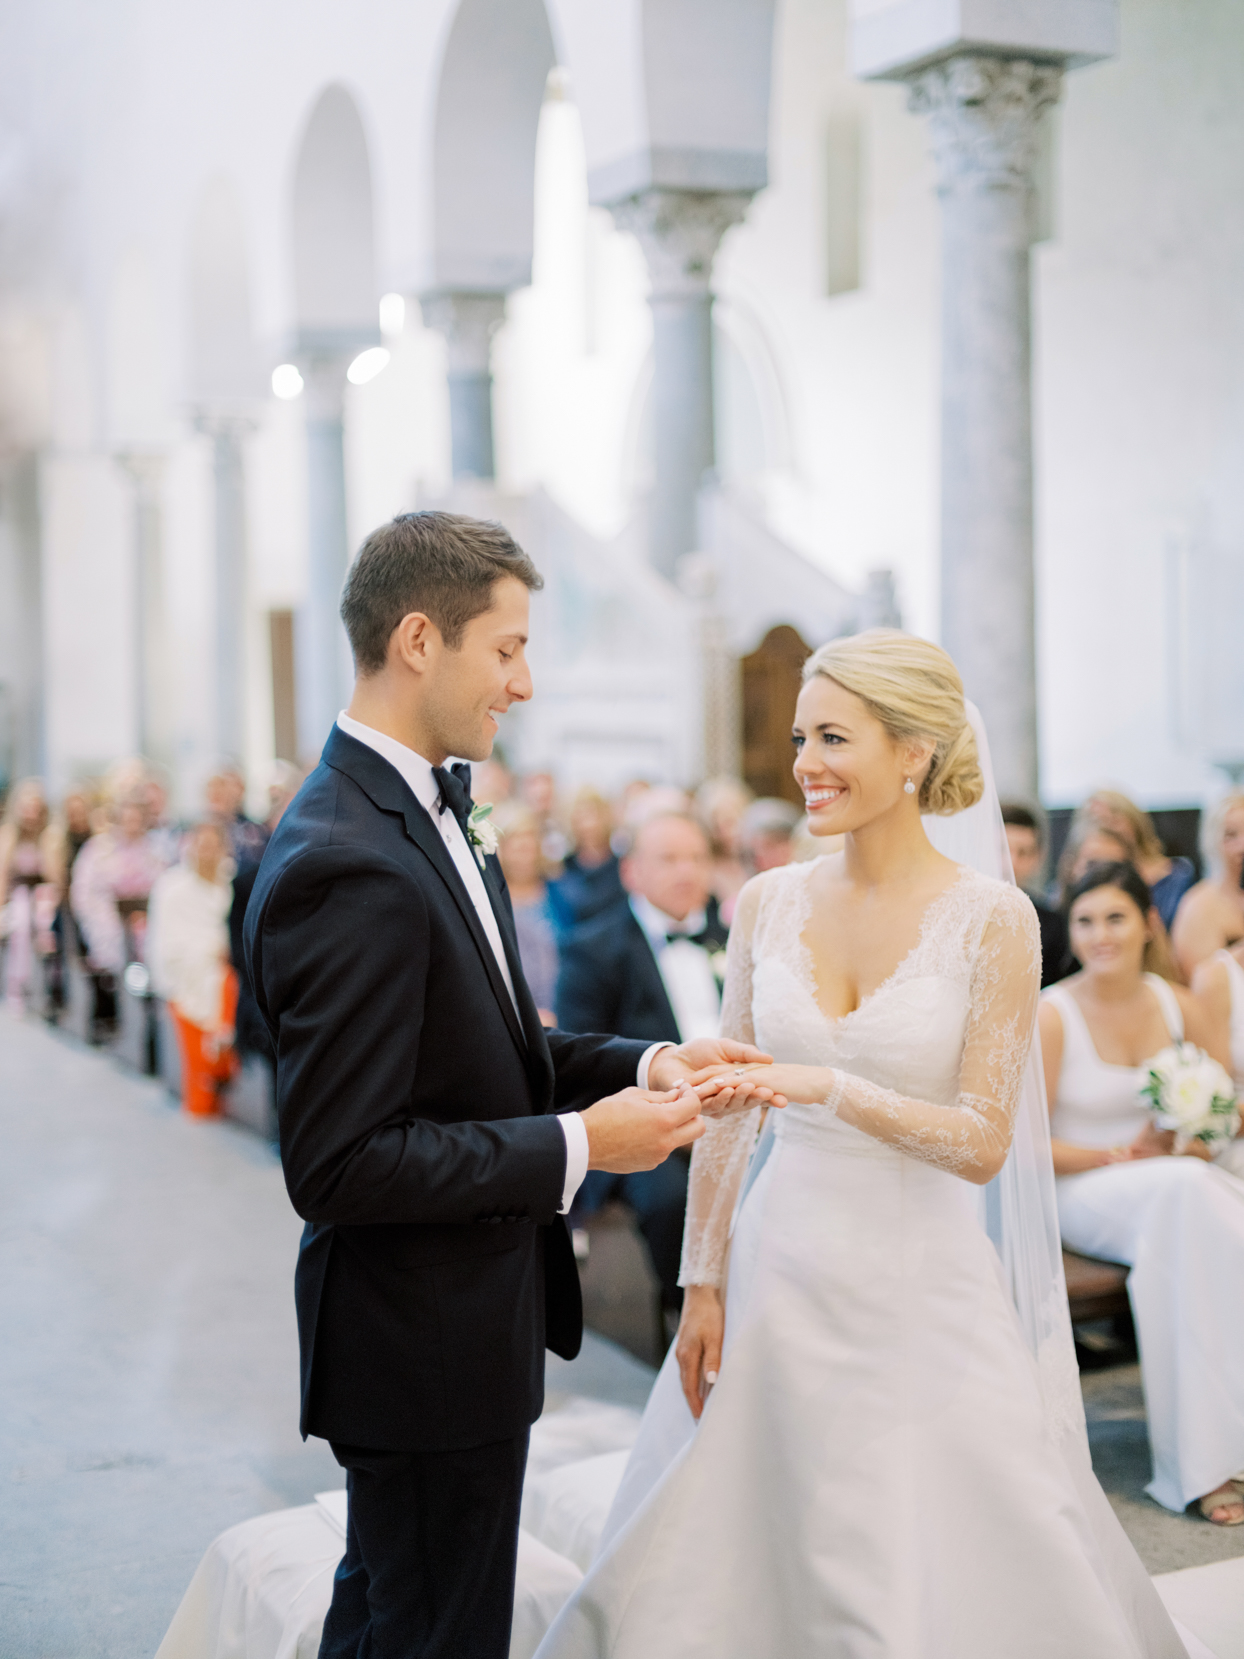 wedding couple exchanging rings in church